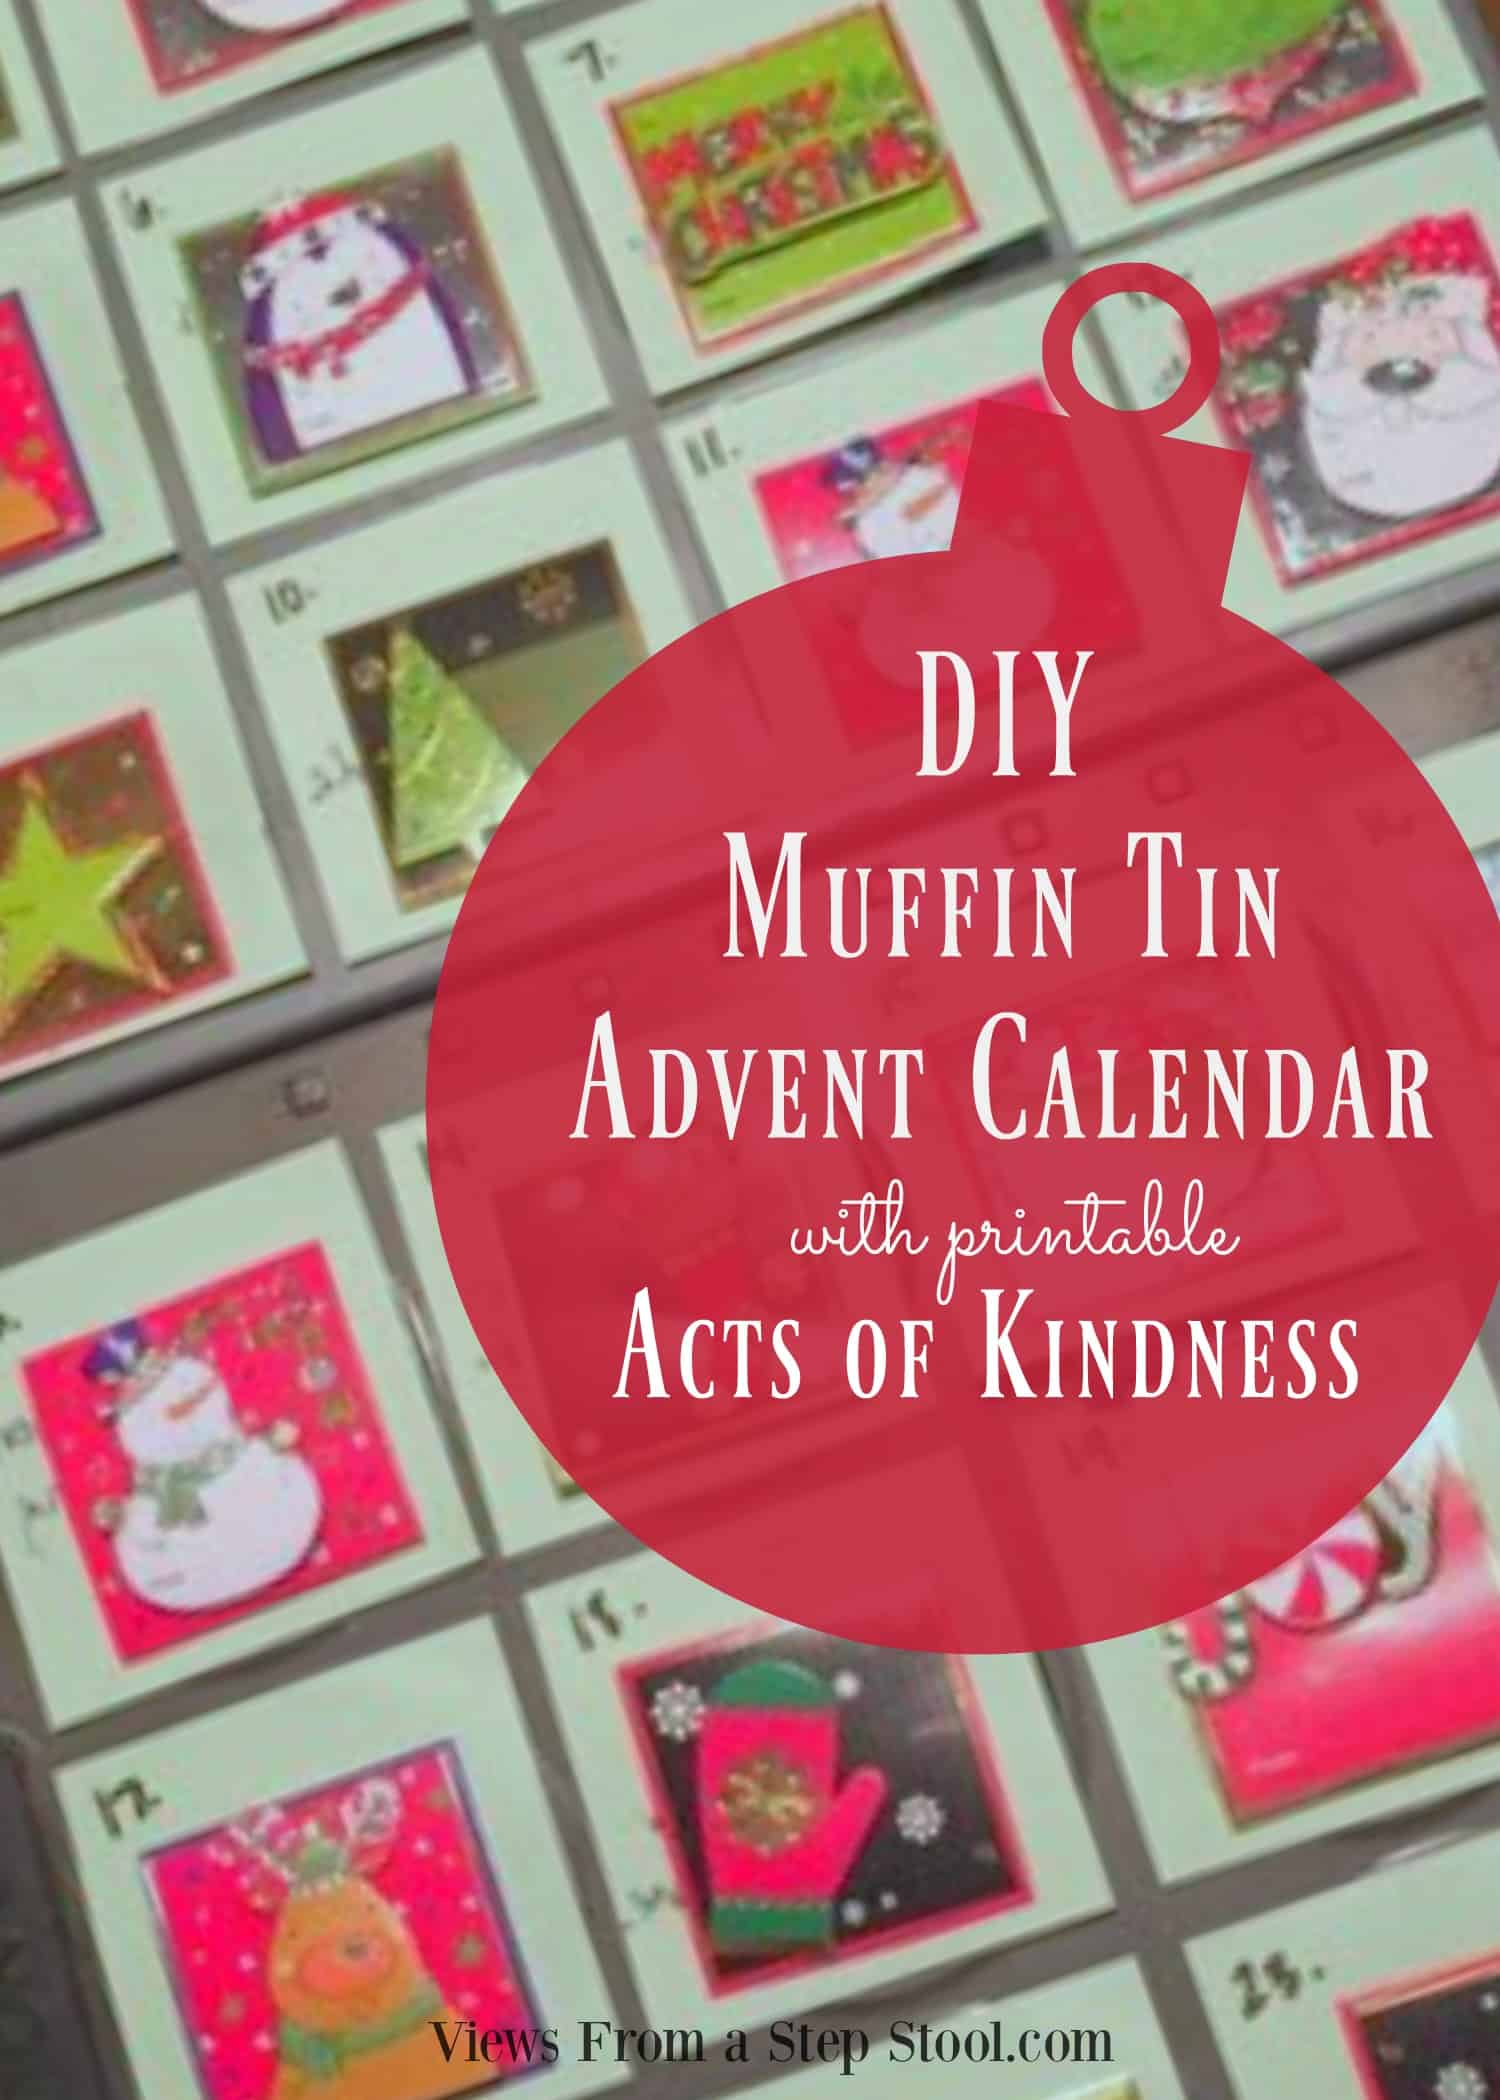 Check out how to turn muffin tins into a DIY Advent Calendar! Comes with a free printable Acts of Kindness calendar.